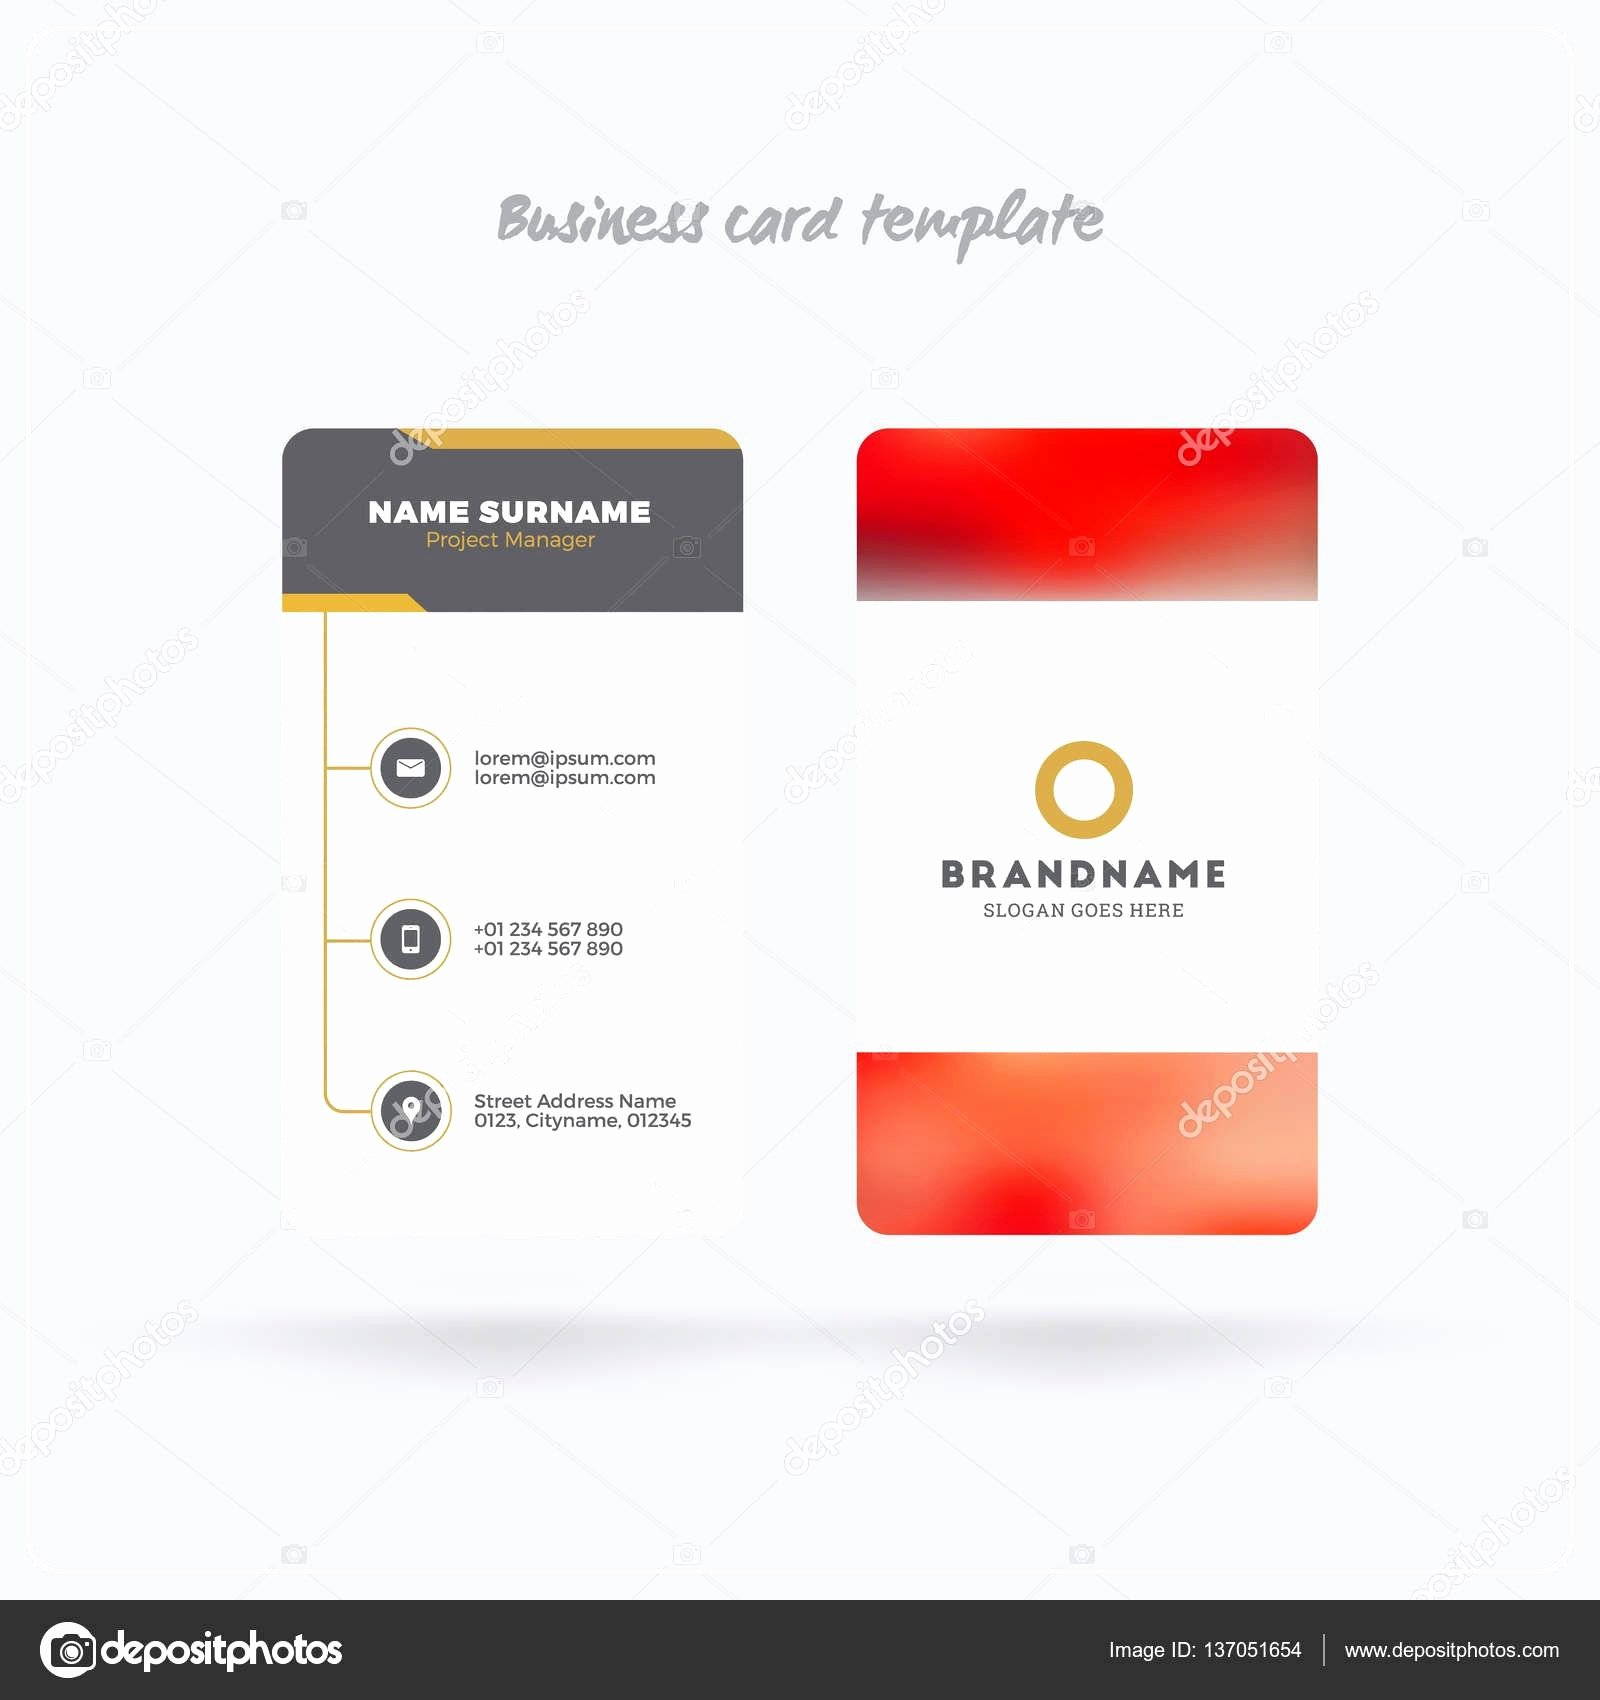 Round Business Cards Template Beautiful Business Card Rounded Corners Template Elegant Rounded